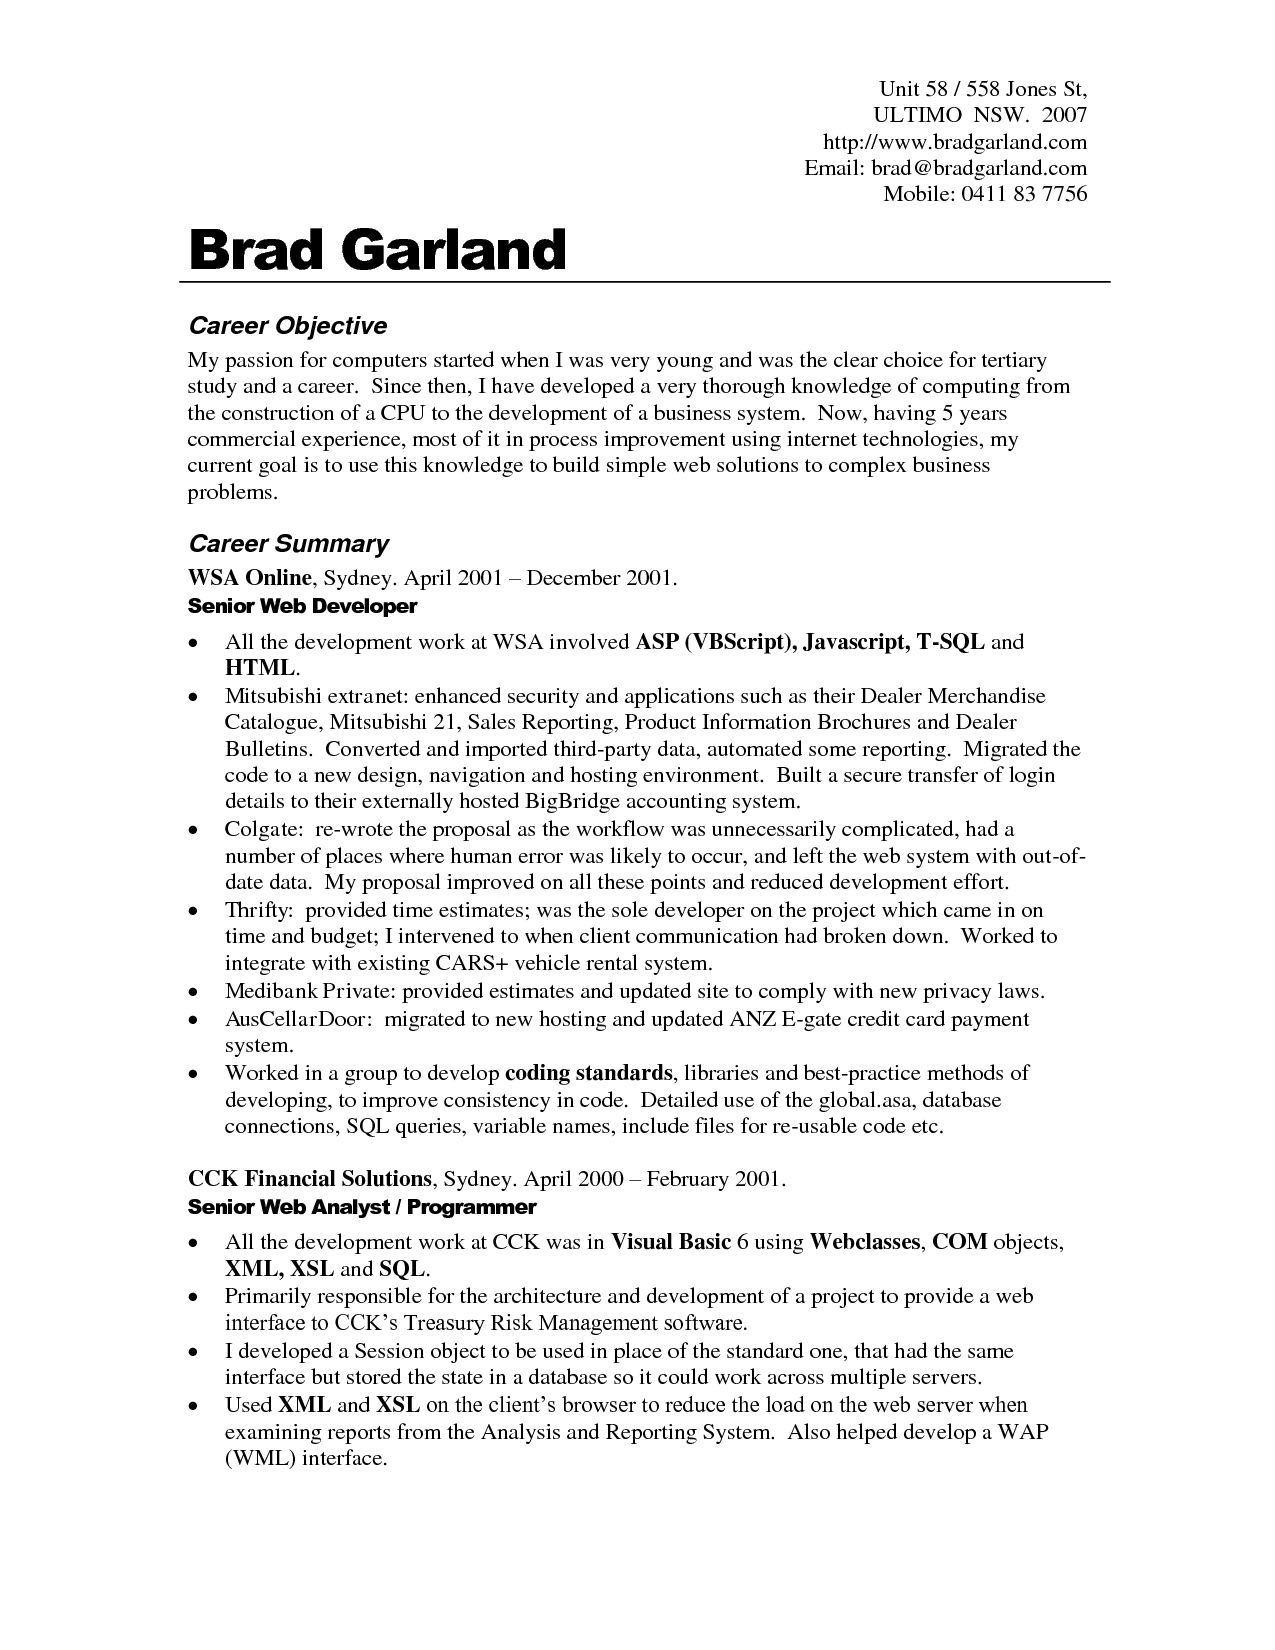 Attorney Resume Template Adorable Resume Examples Job Objective  Sample Resume Entry Level And .